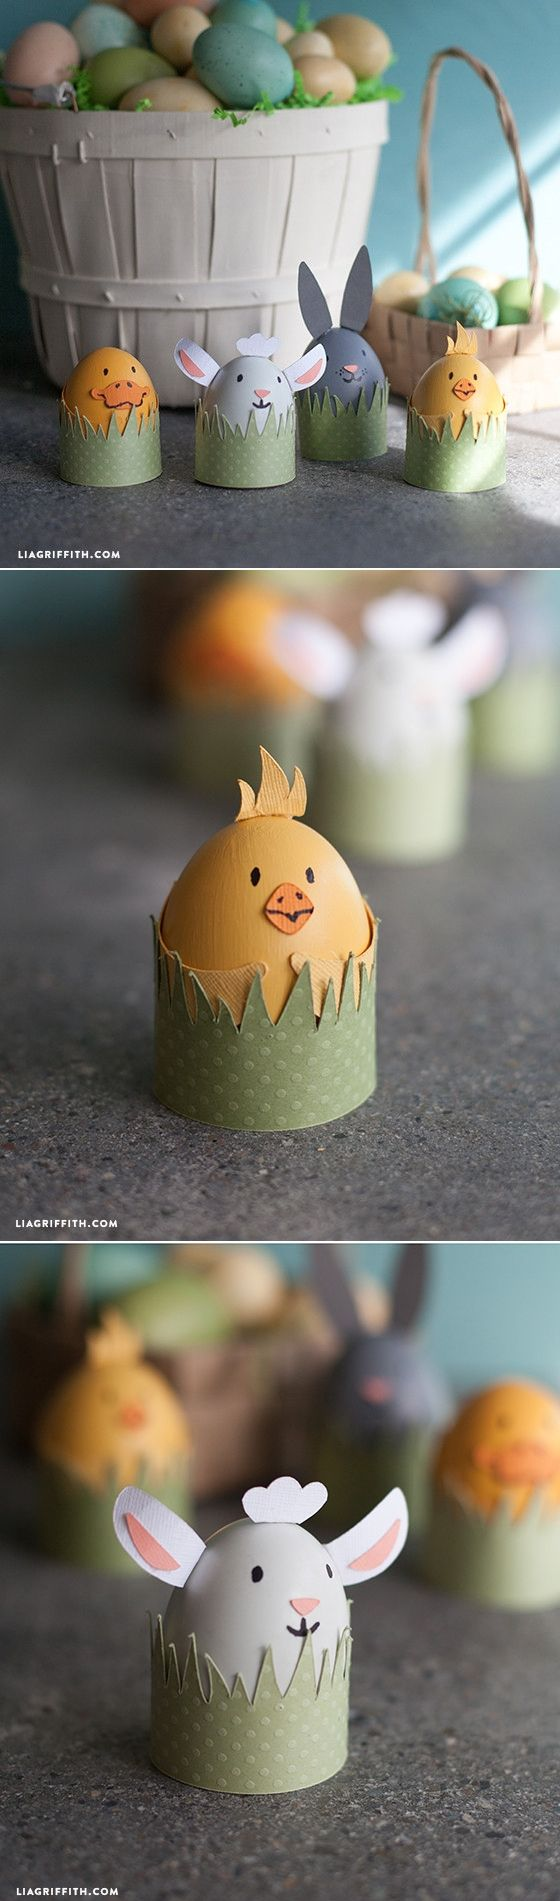 #EasterCraft #KidsCraft #EasterDecorations at www.LiaGriffith.com - created via http://pinthemall.net